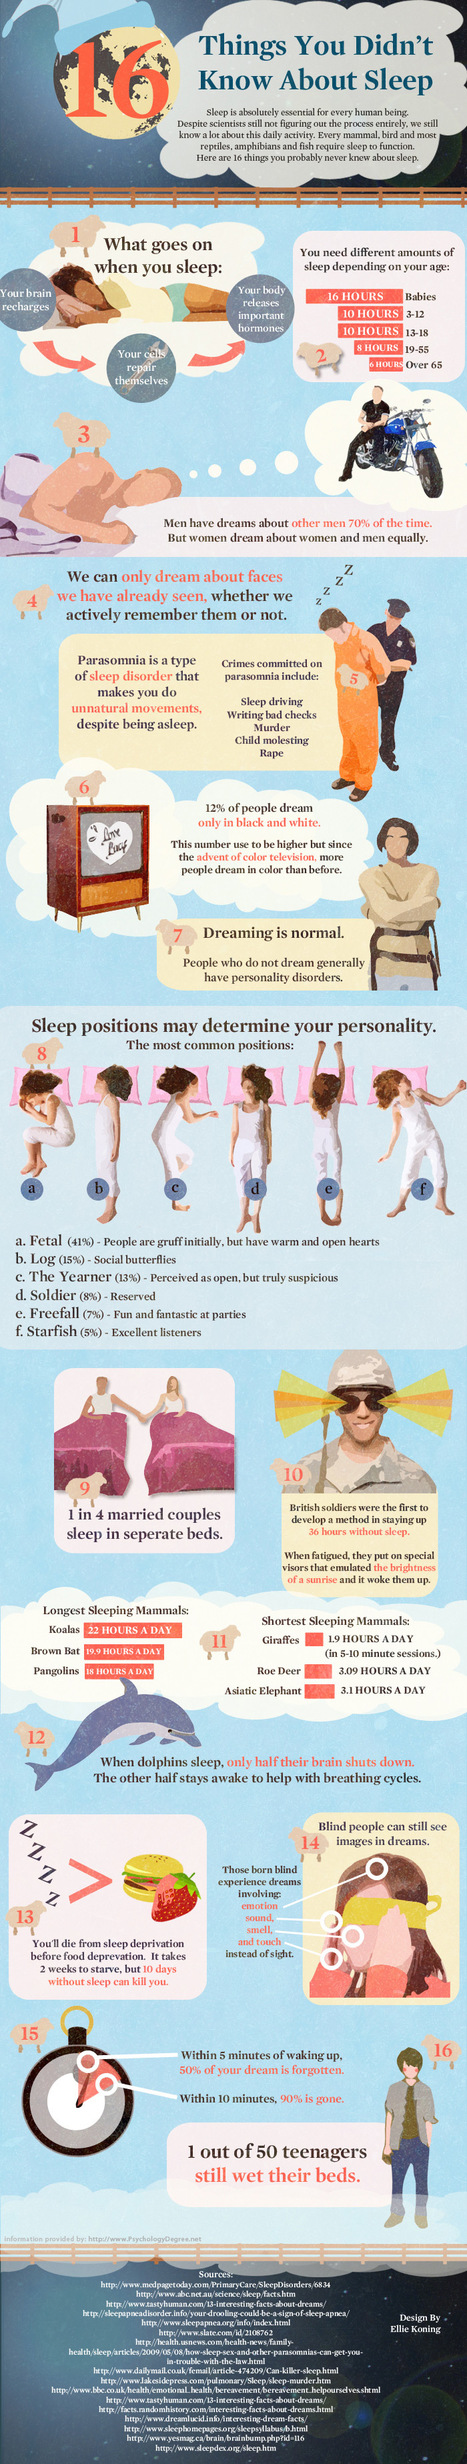 16 Facts About Sleep [infographic]   EPIC Infographic   Scoop.it